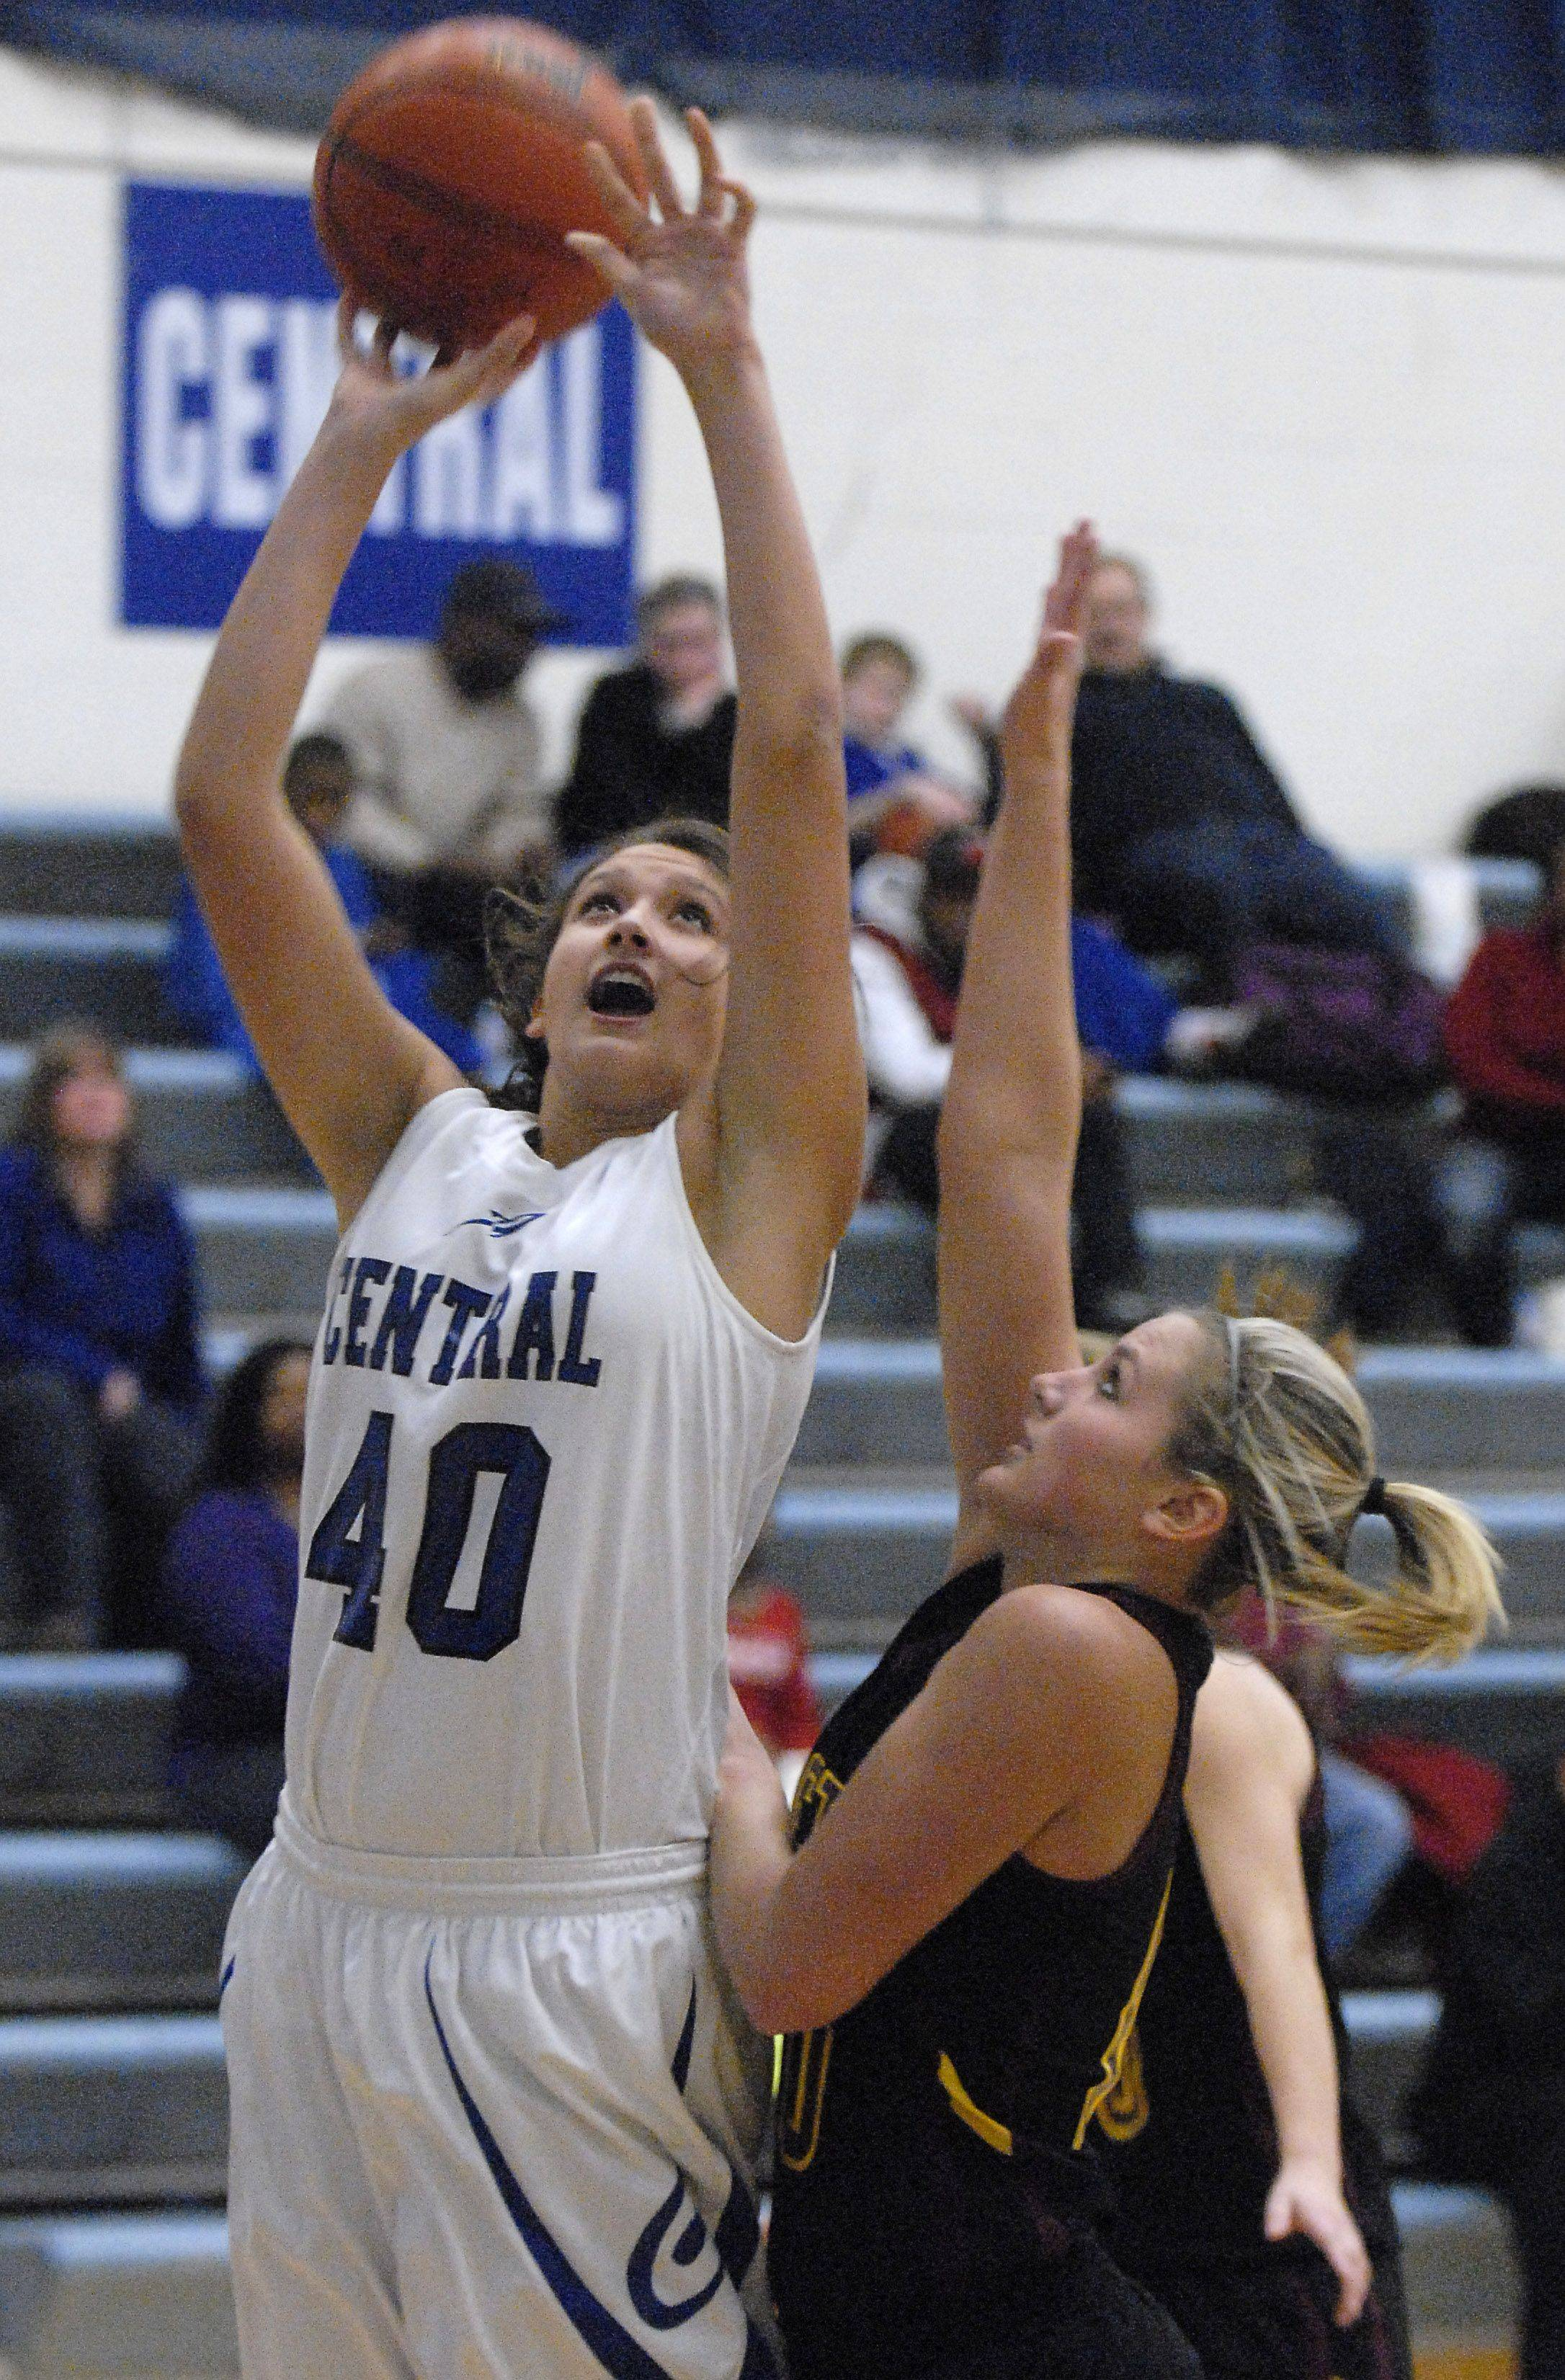 Images: Burlington Central vs. Richmond-Burton girls basketball